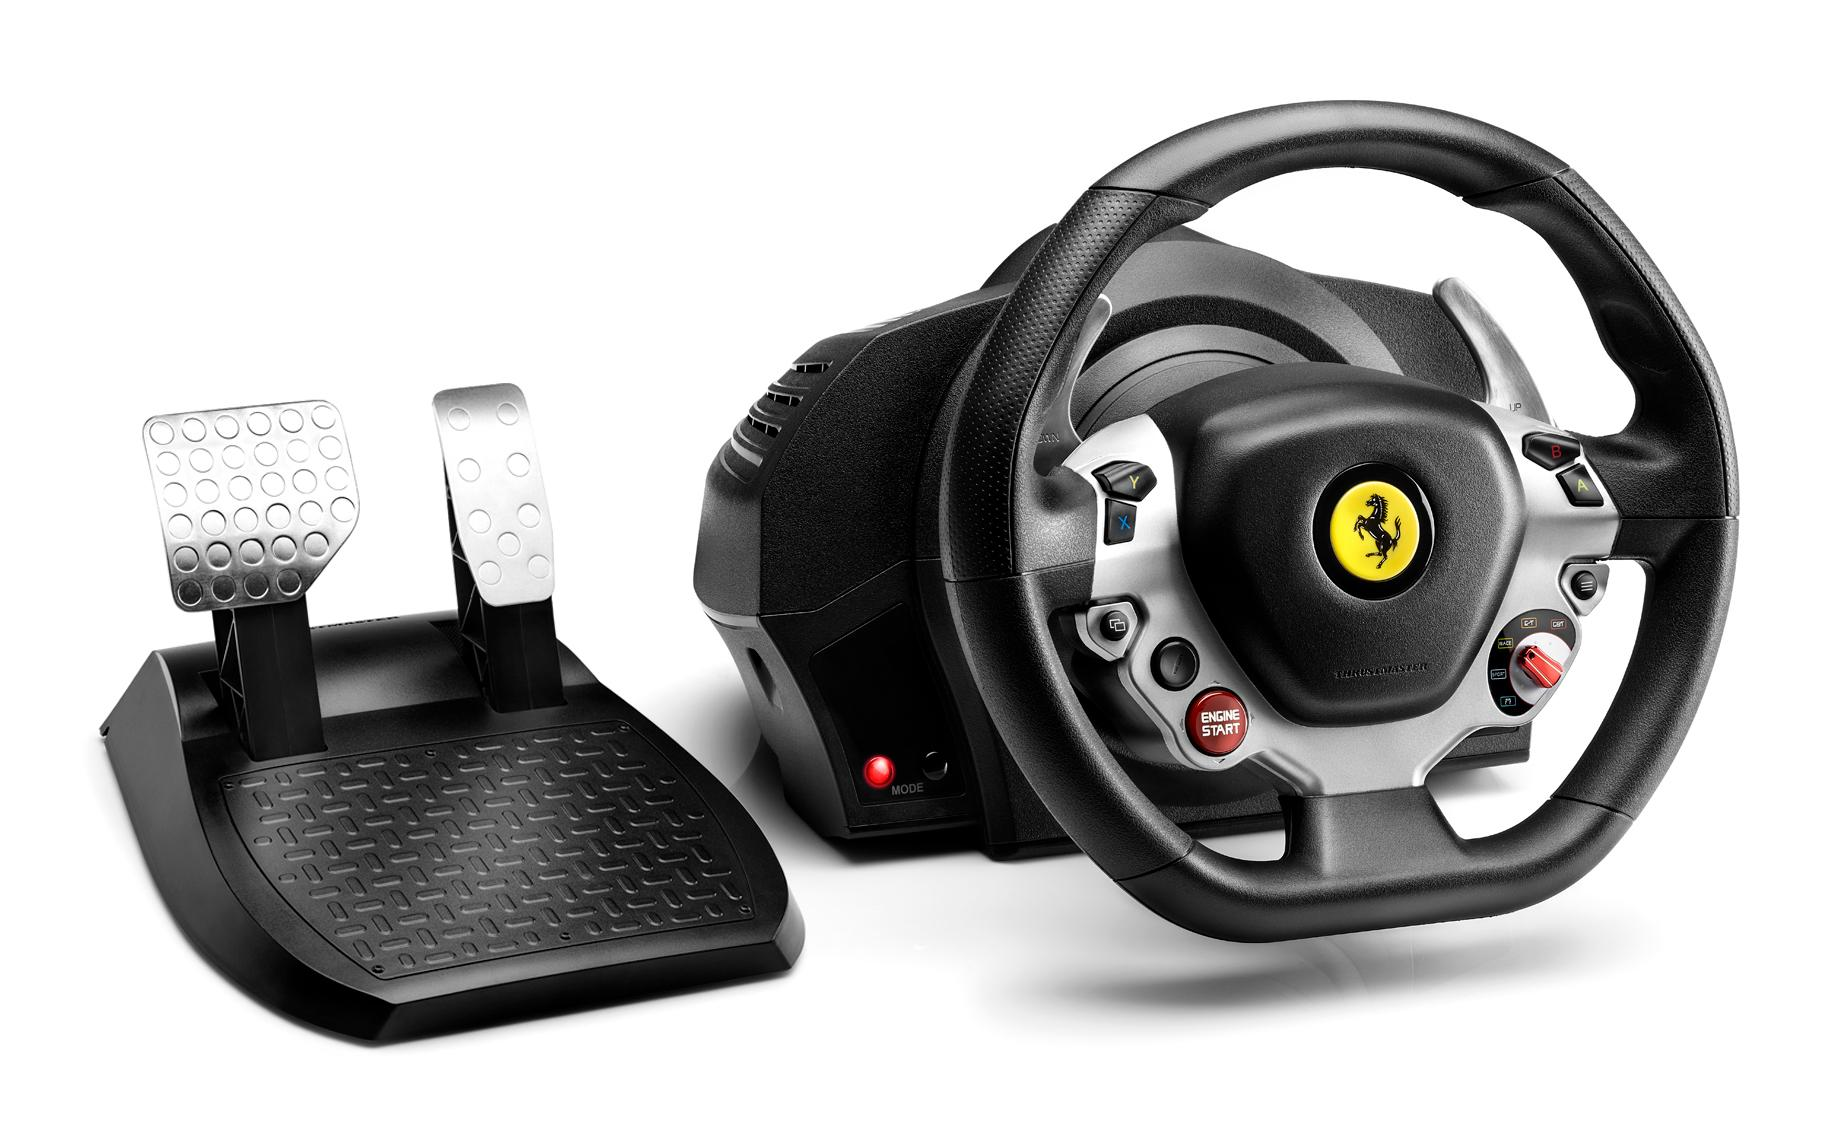 b2855dba b53e 4bc7 ad22 c2c53ca234f4._SR300300_ amazon com thrustmaster tx racing wheel ferrari 458 italia proforce 1500 wiring diagram at n-0.co